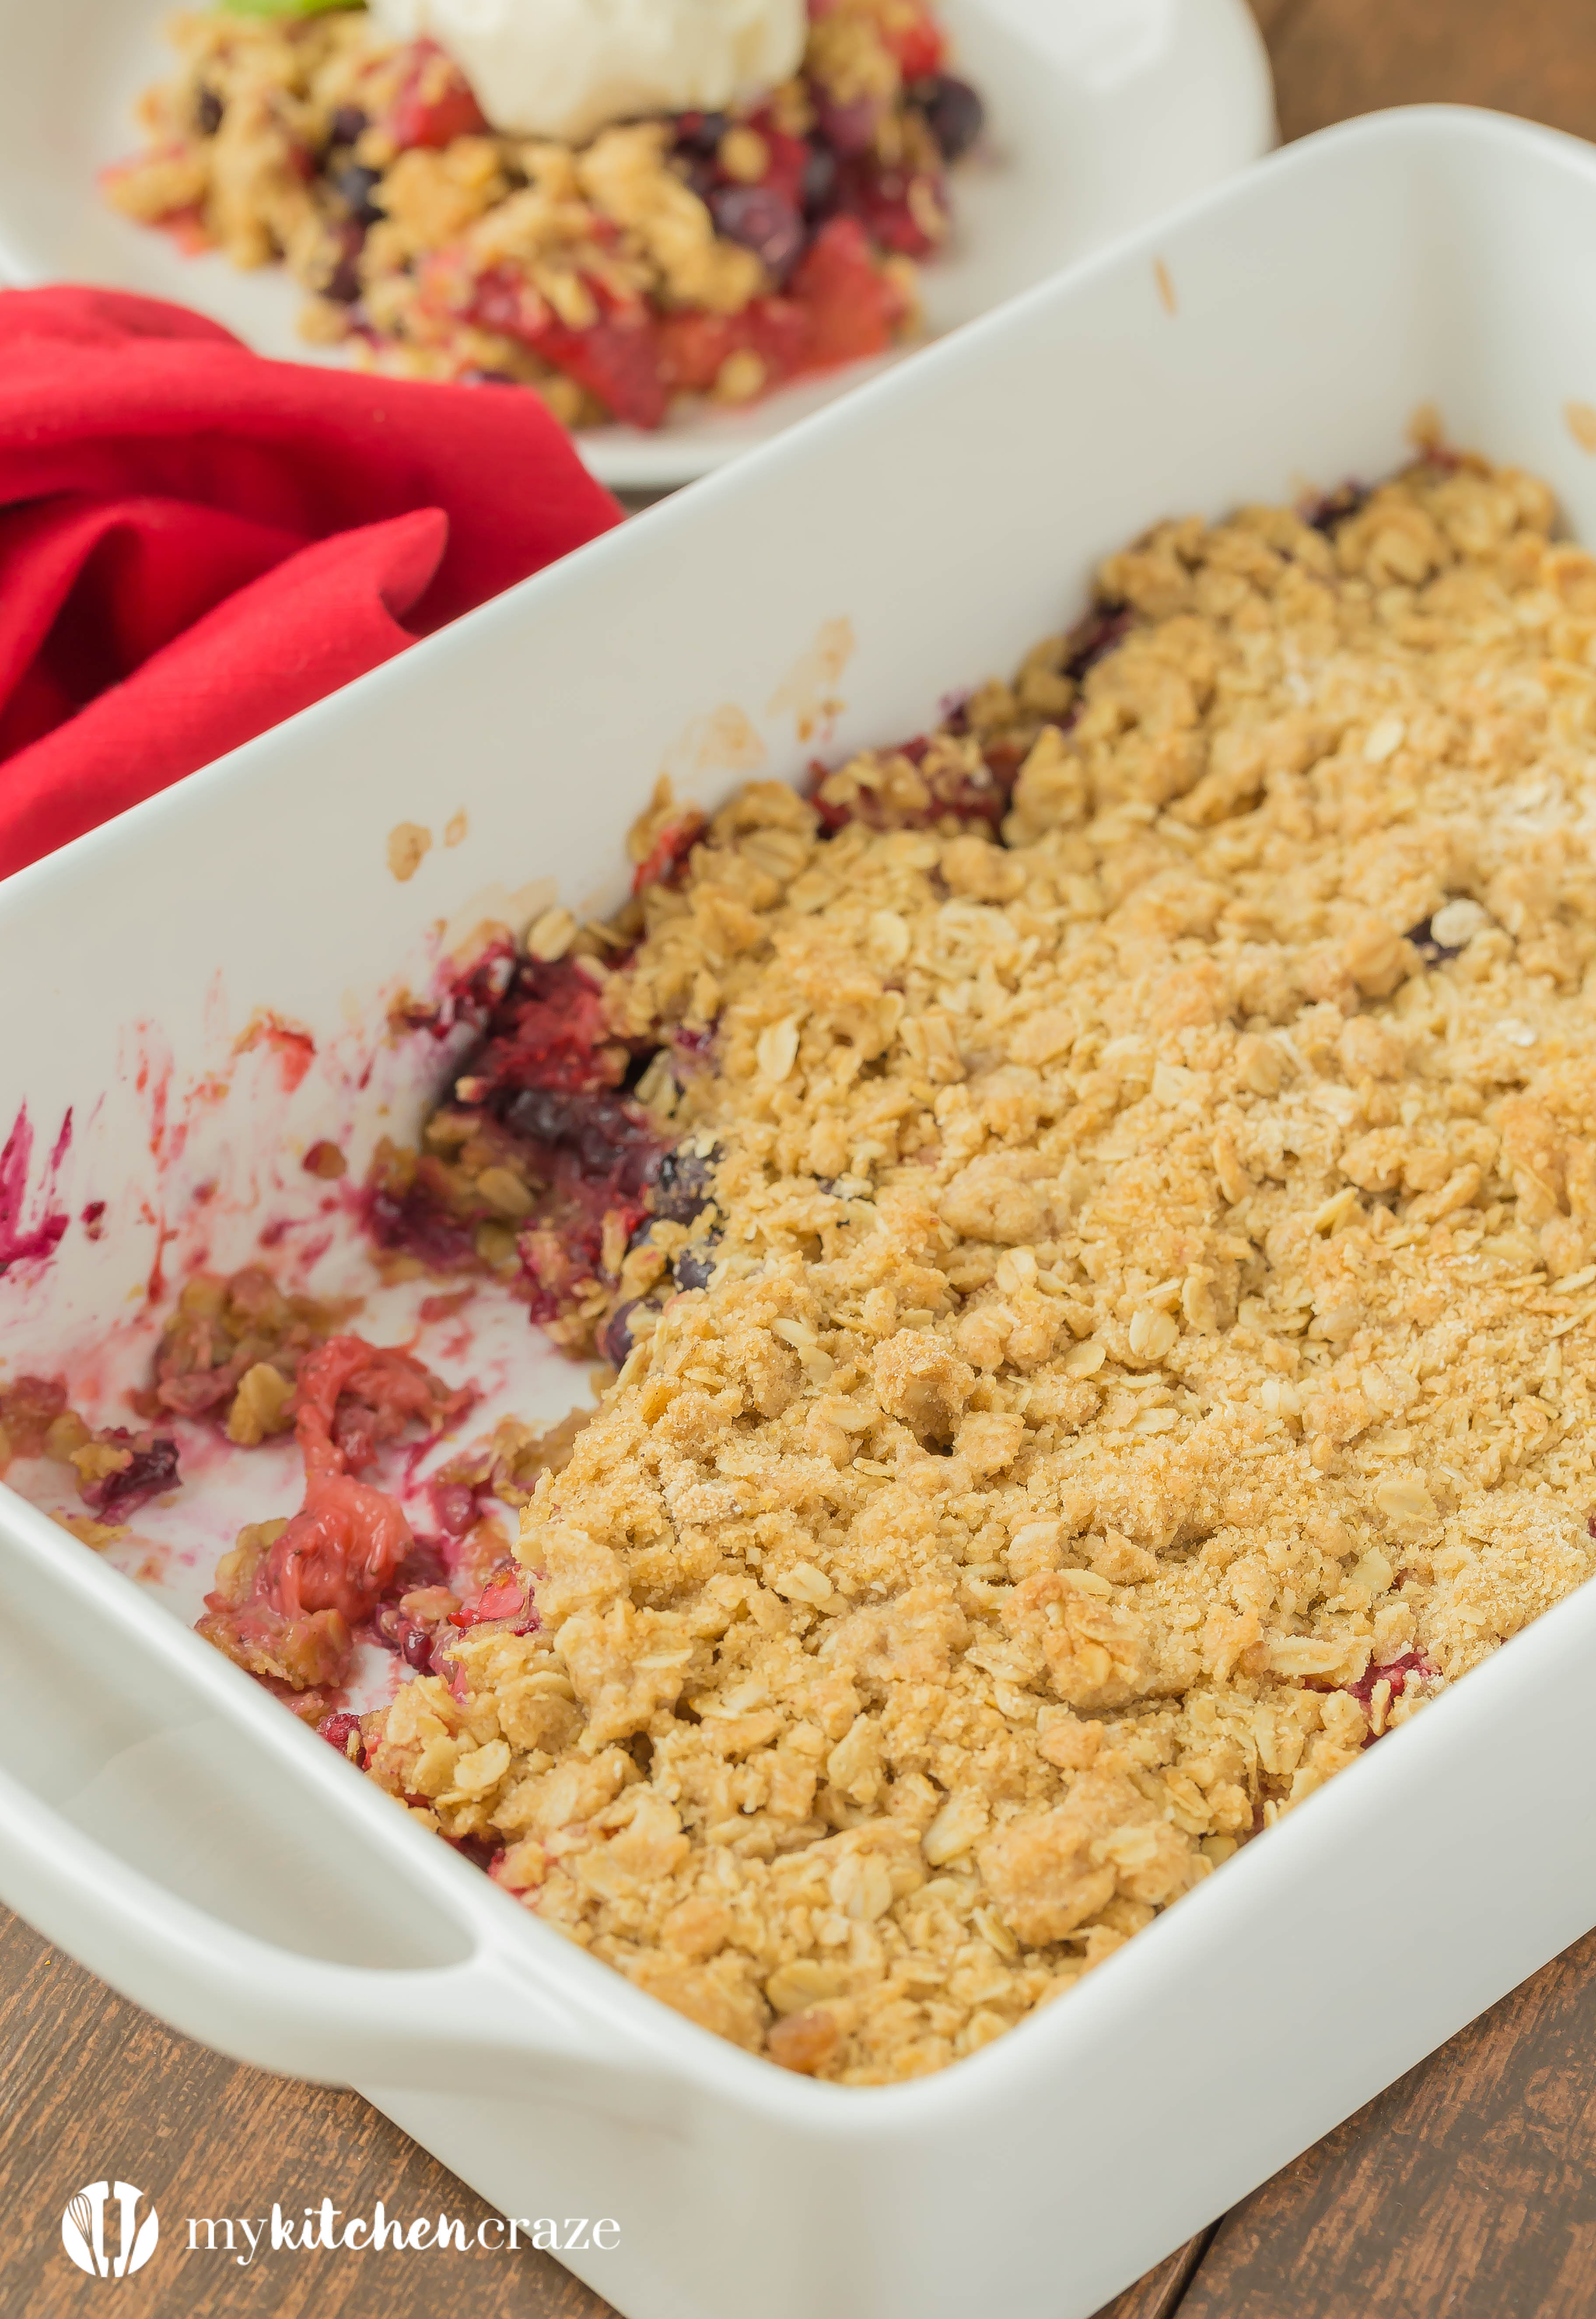 Warm mixed berries topped with crispy oats, make this Triple Berry Crisp a delicious fruit dessert! Serve it with a big scoop of vanilla ice cream or all by its self. It's delicious and a must have this season!